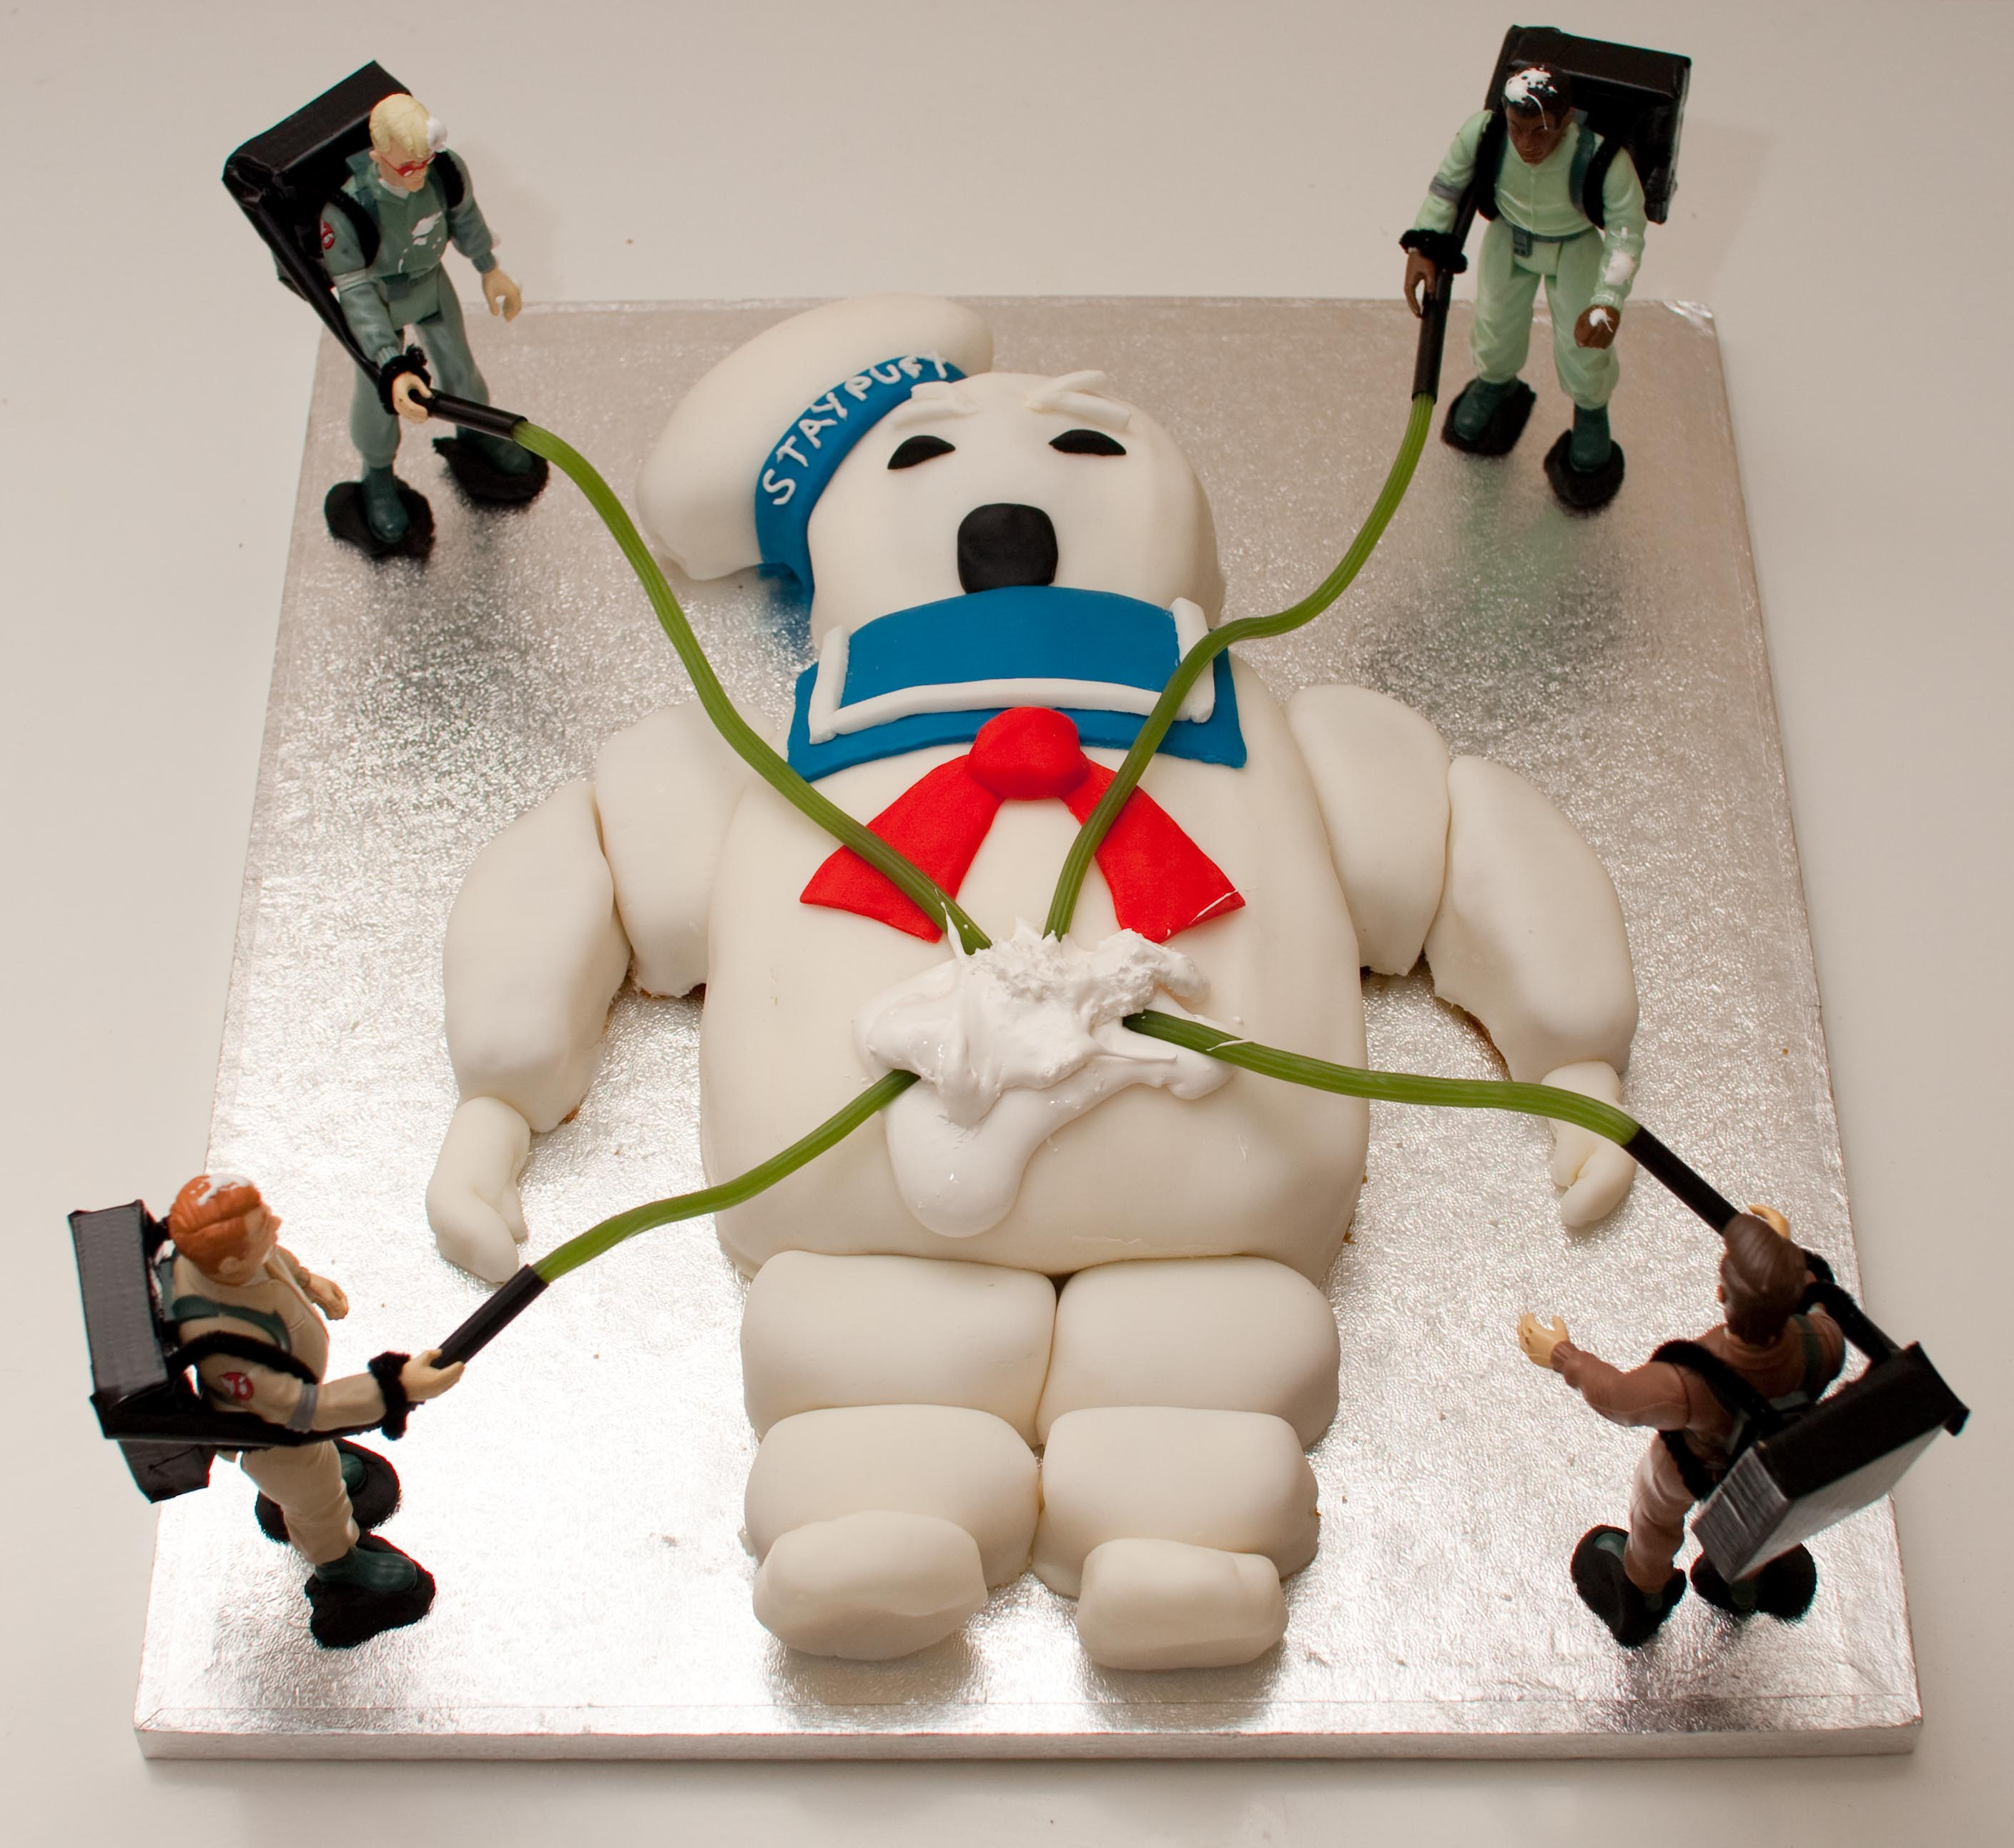 Birthday Cake For A Man Of God ~ Ghostbusters cake for squeezeomatic s birthday by poppet with a camera flickr photo